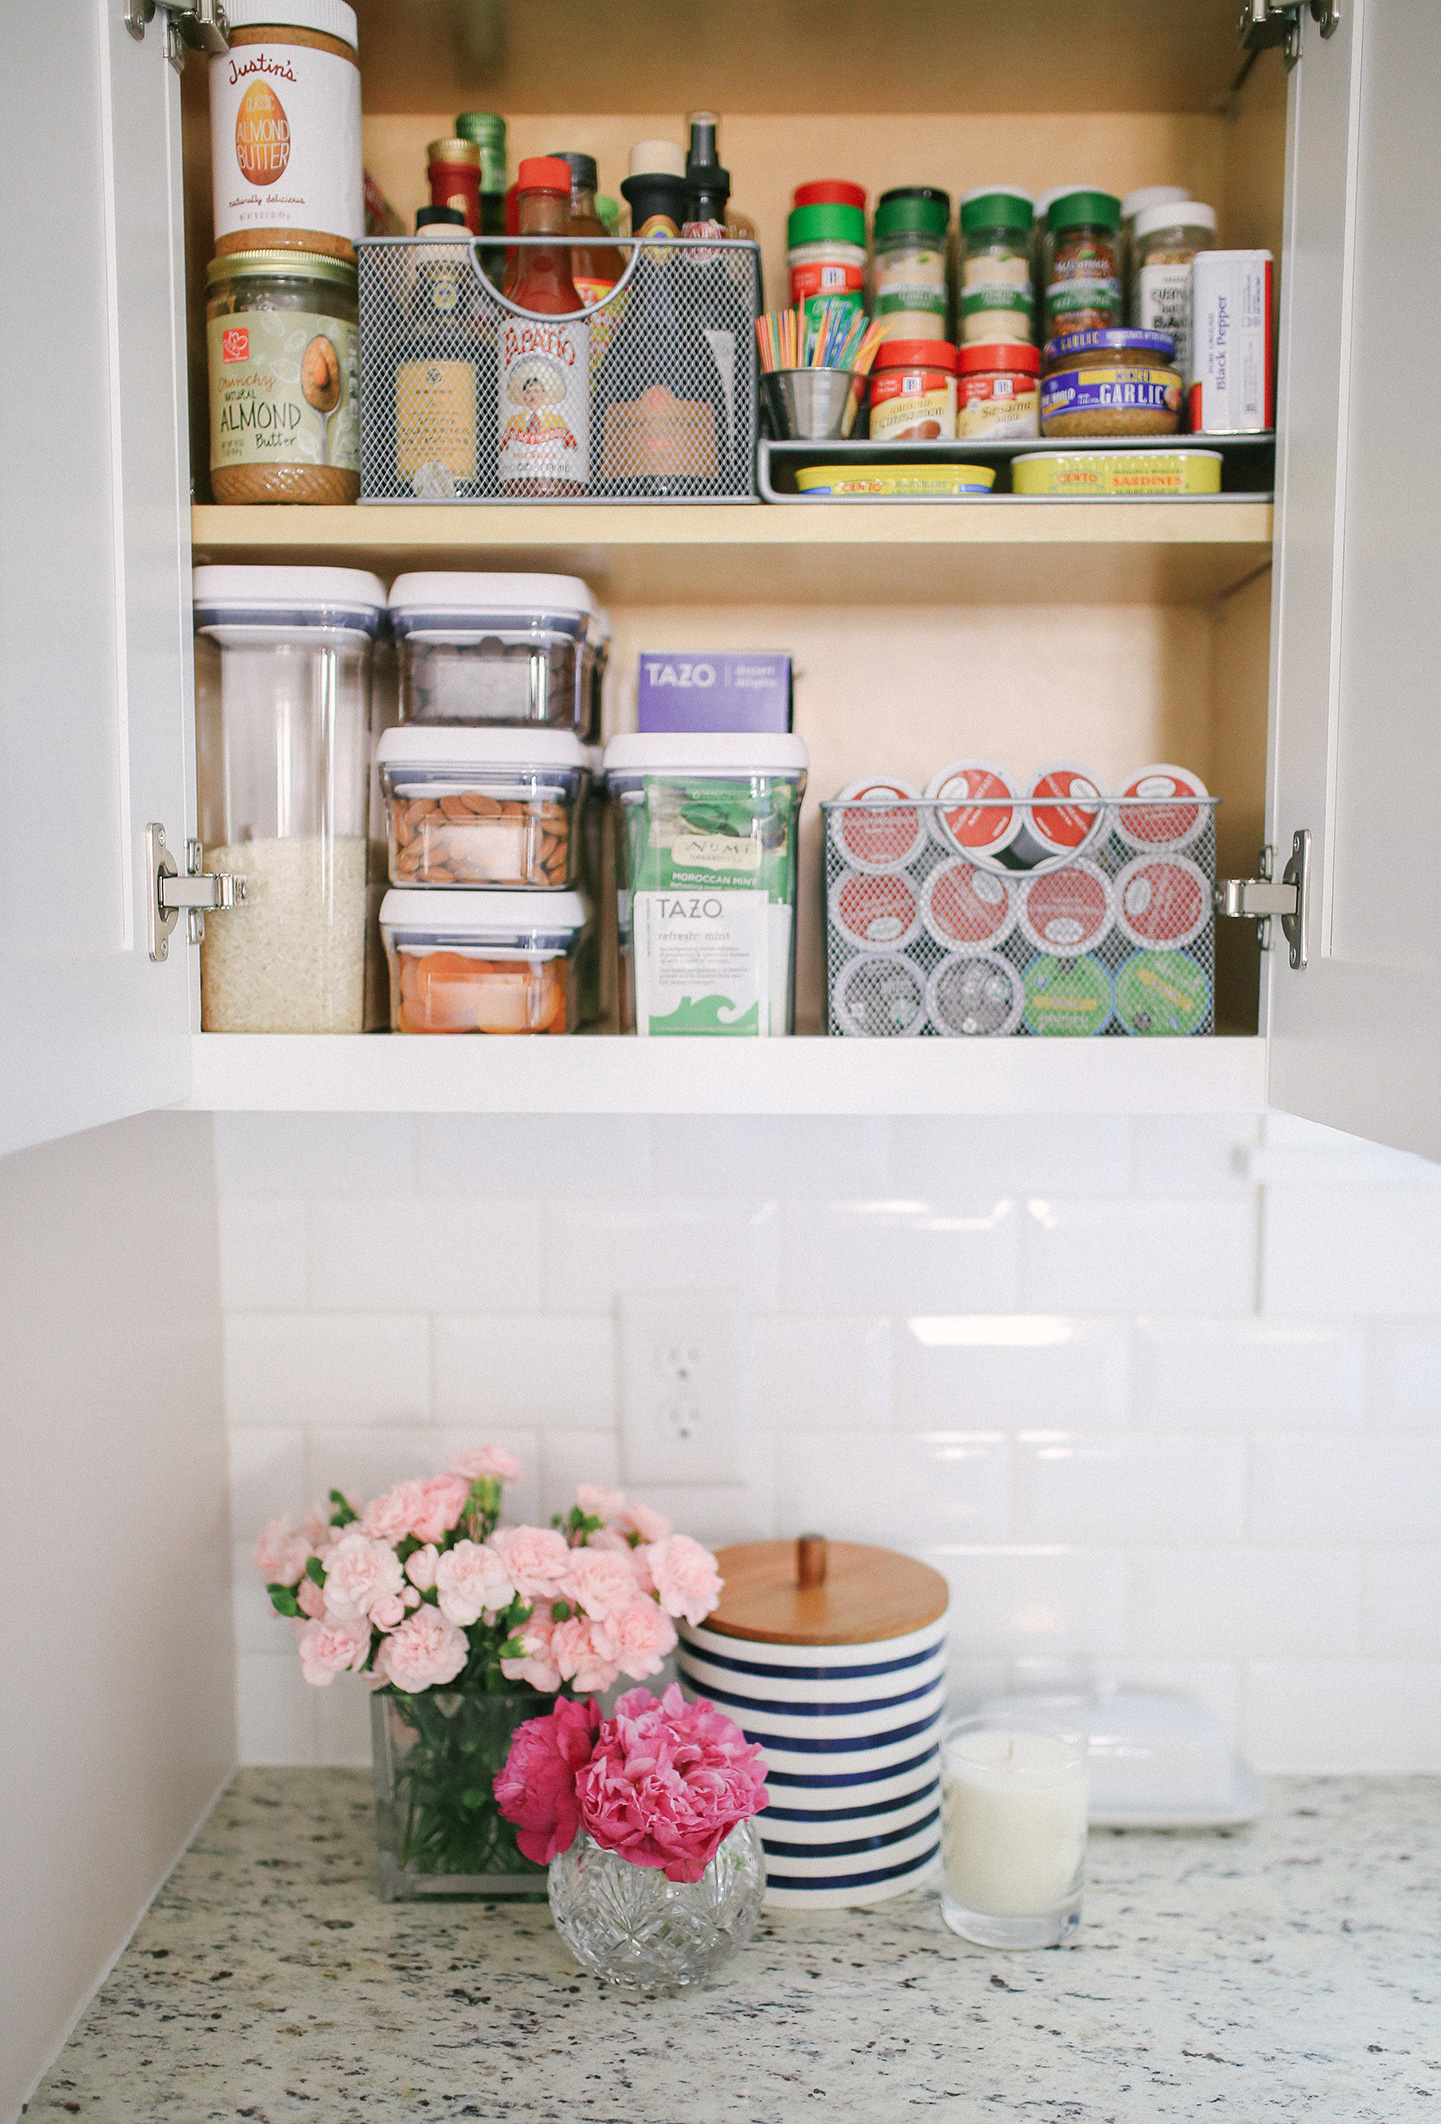 Organized Pantry with Bed Bath & Beyond